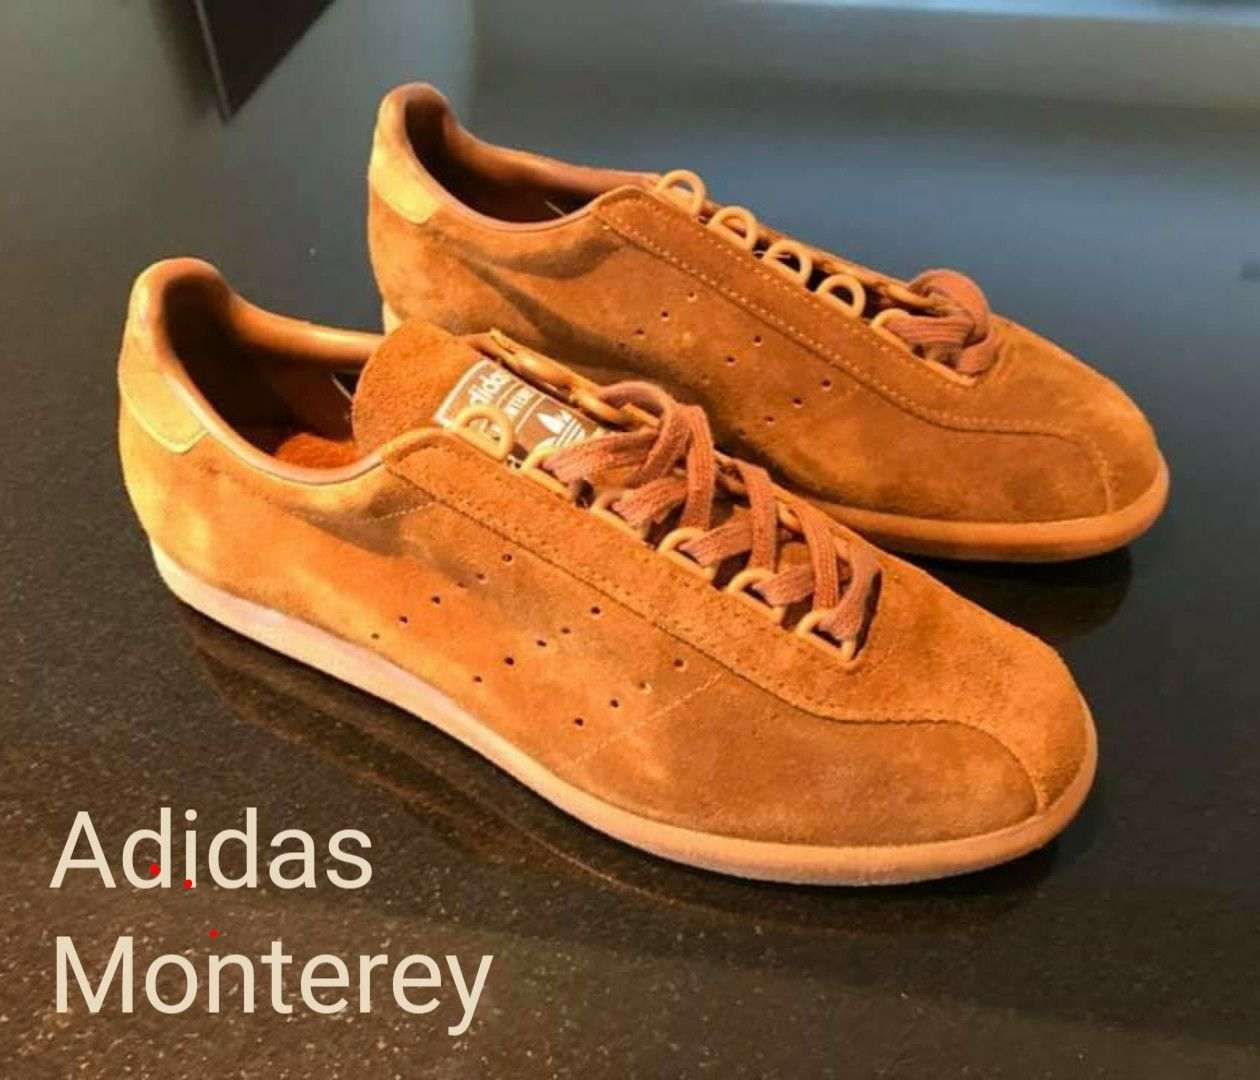 49dde070885a9 Crackin' pair of vintage adidas Monterey, with ghillie lacing system ...